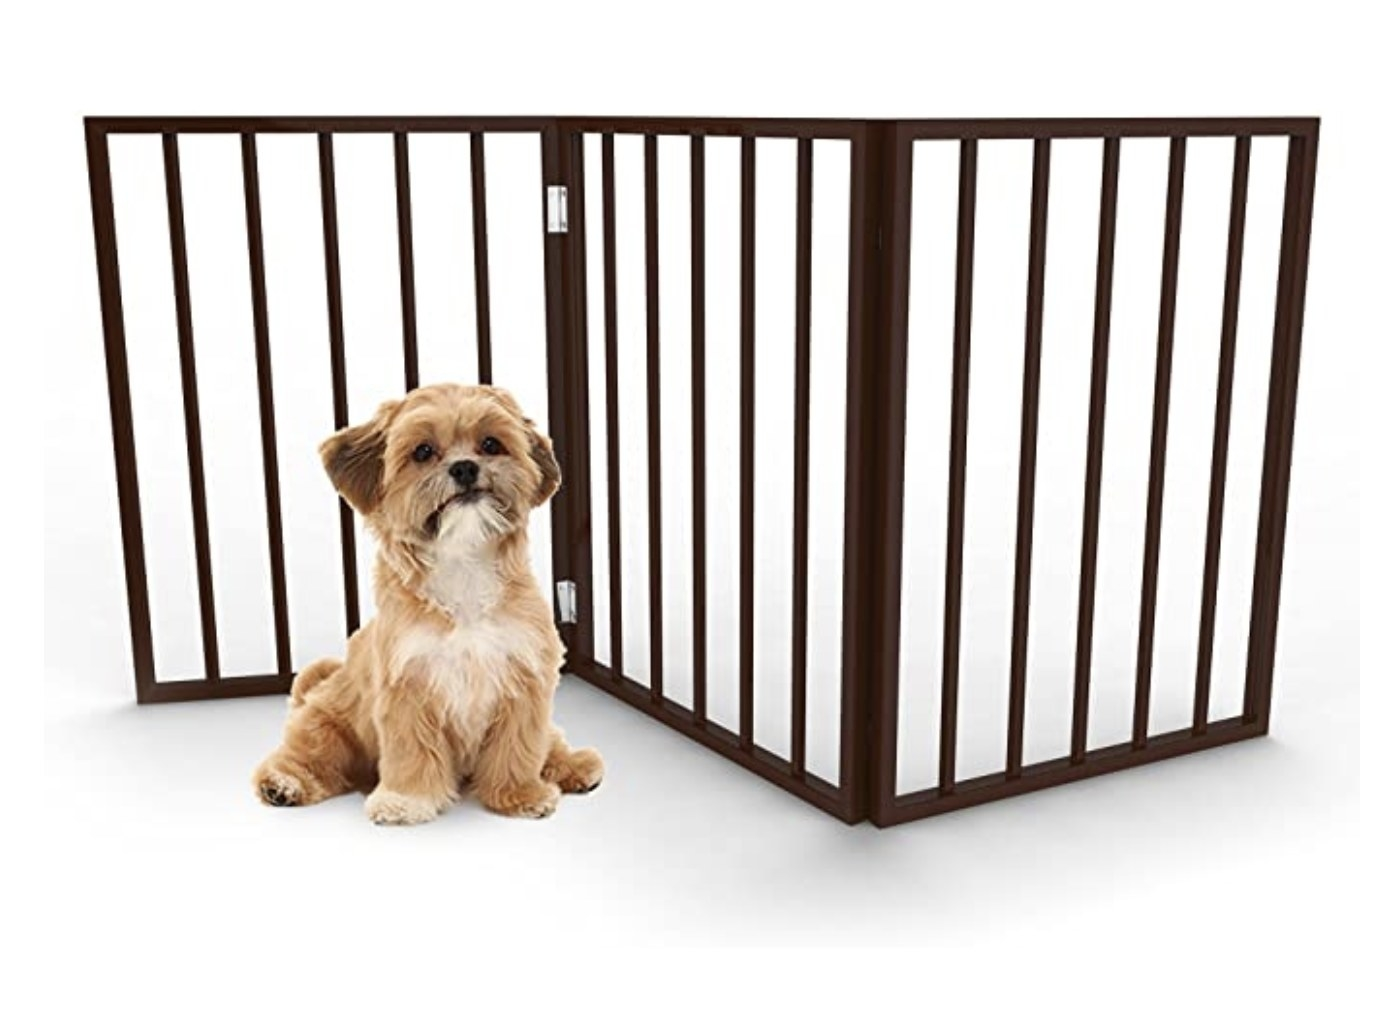 A puppy behind the pet gate